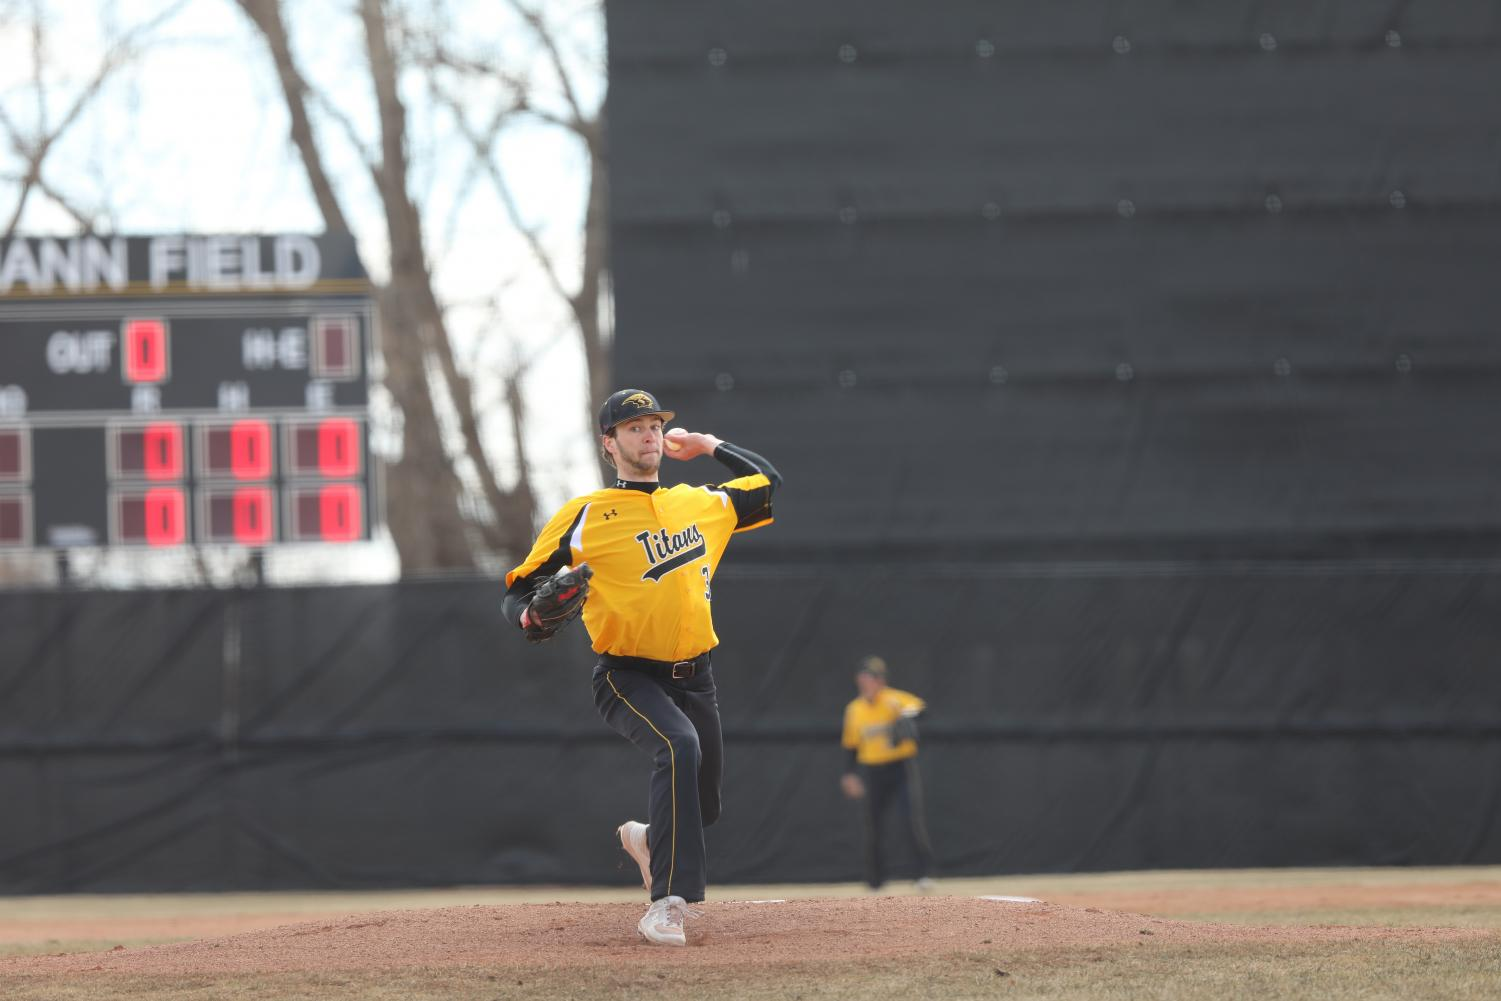 Chris Atwood throws a pitch versus the Lions. Atwood threw the tenth no hitter in UWO history and the first since 1995. He recorded 13 strikeouts on 88 pitches.